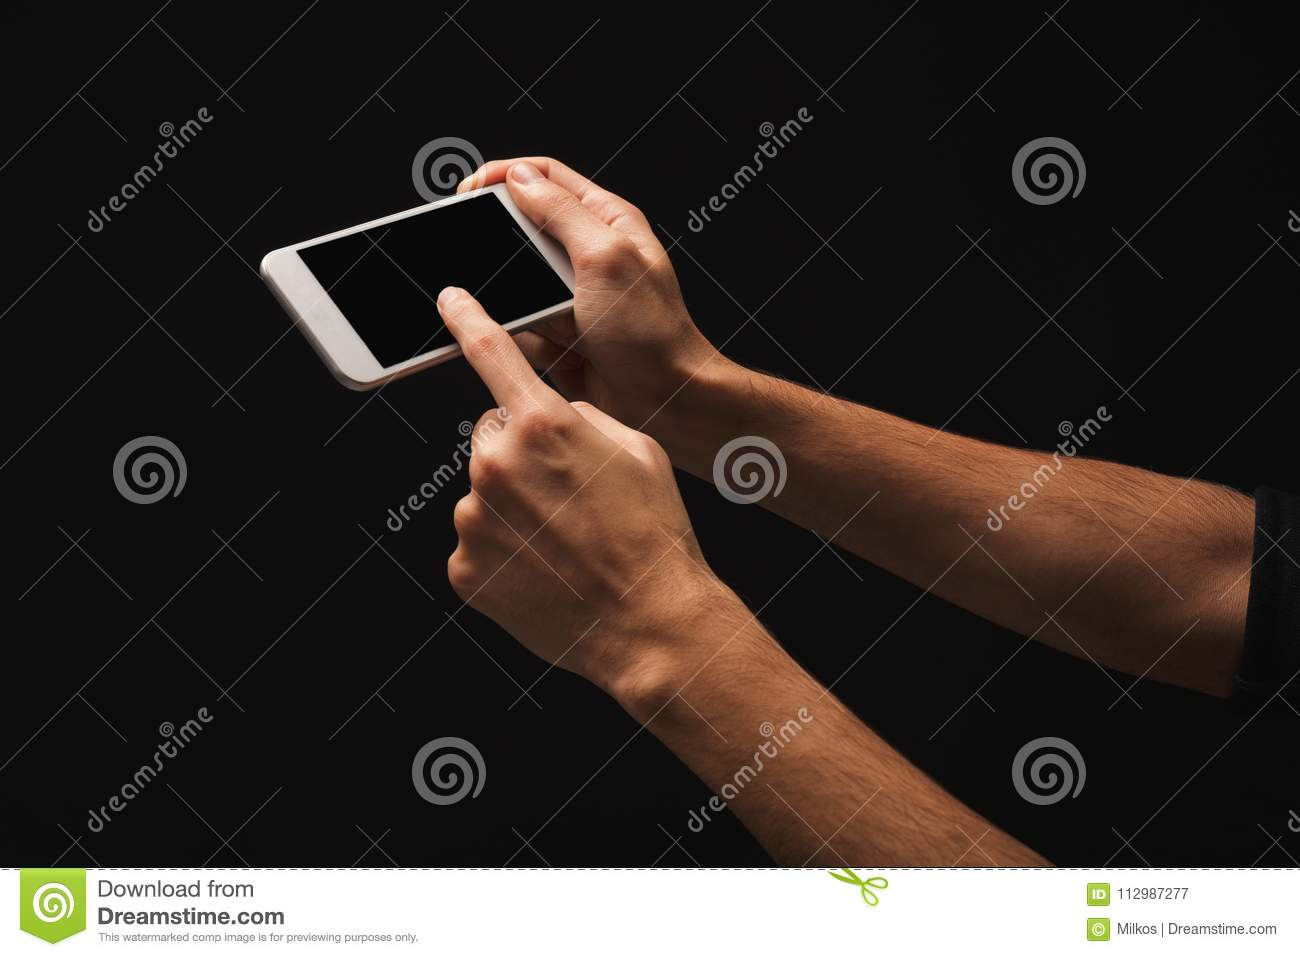 Male hand holding mobile smartphone with blank screen